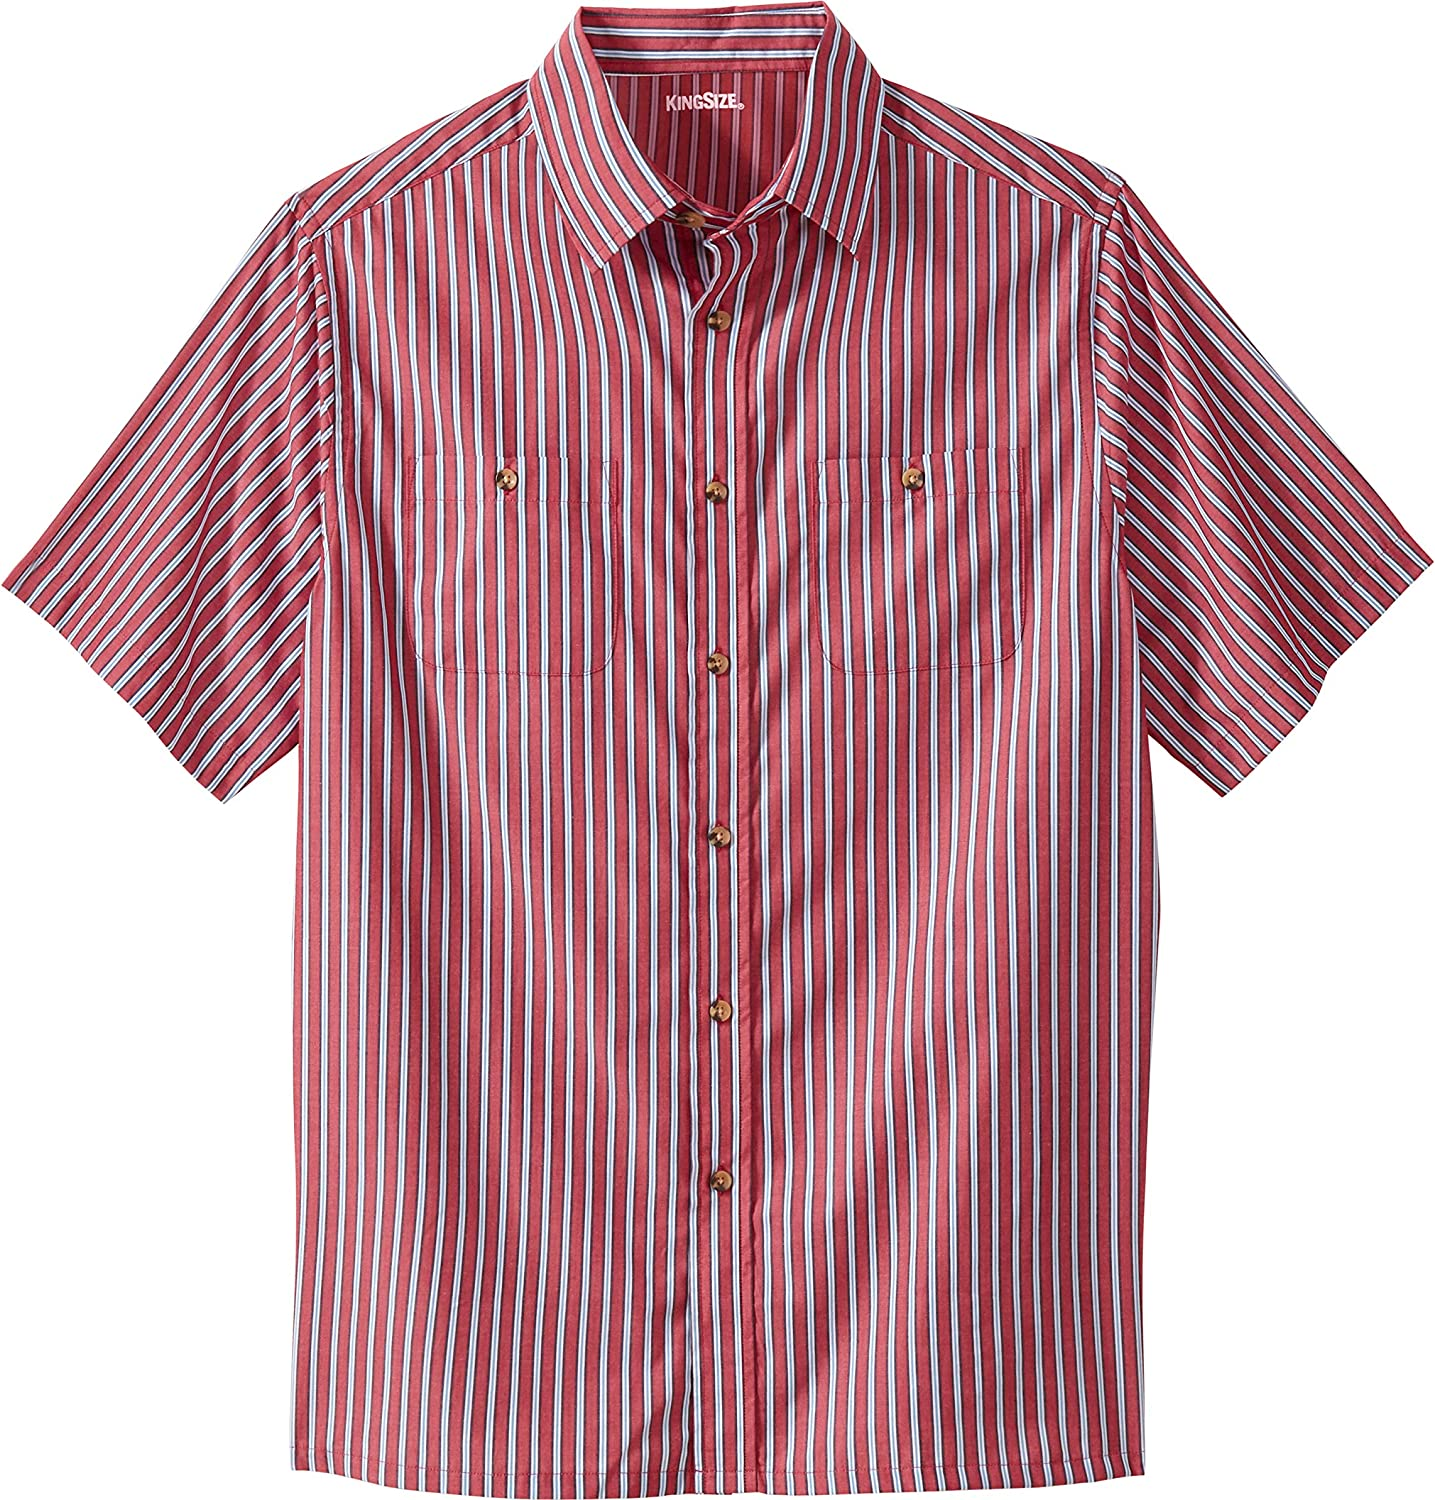 KingSize Mens Big /& Tall Striped Short-Sleeve Sport Shirt